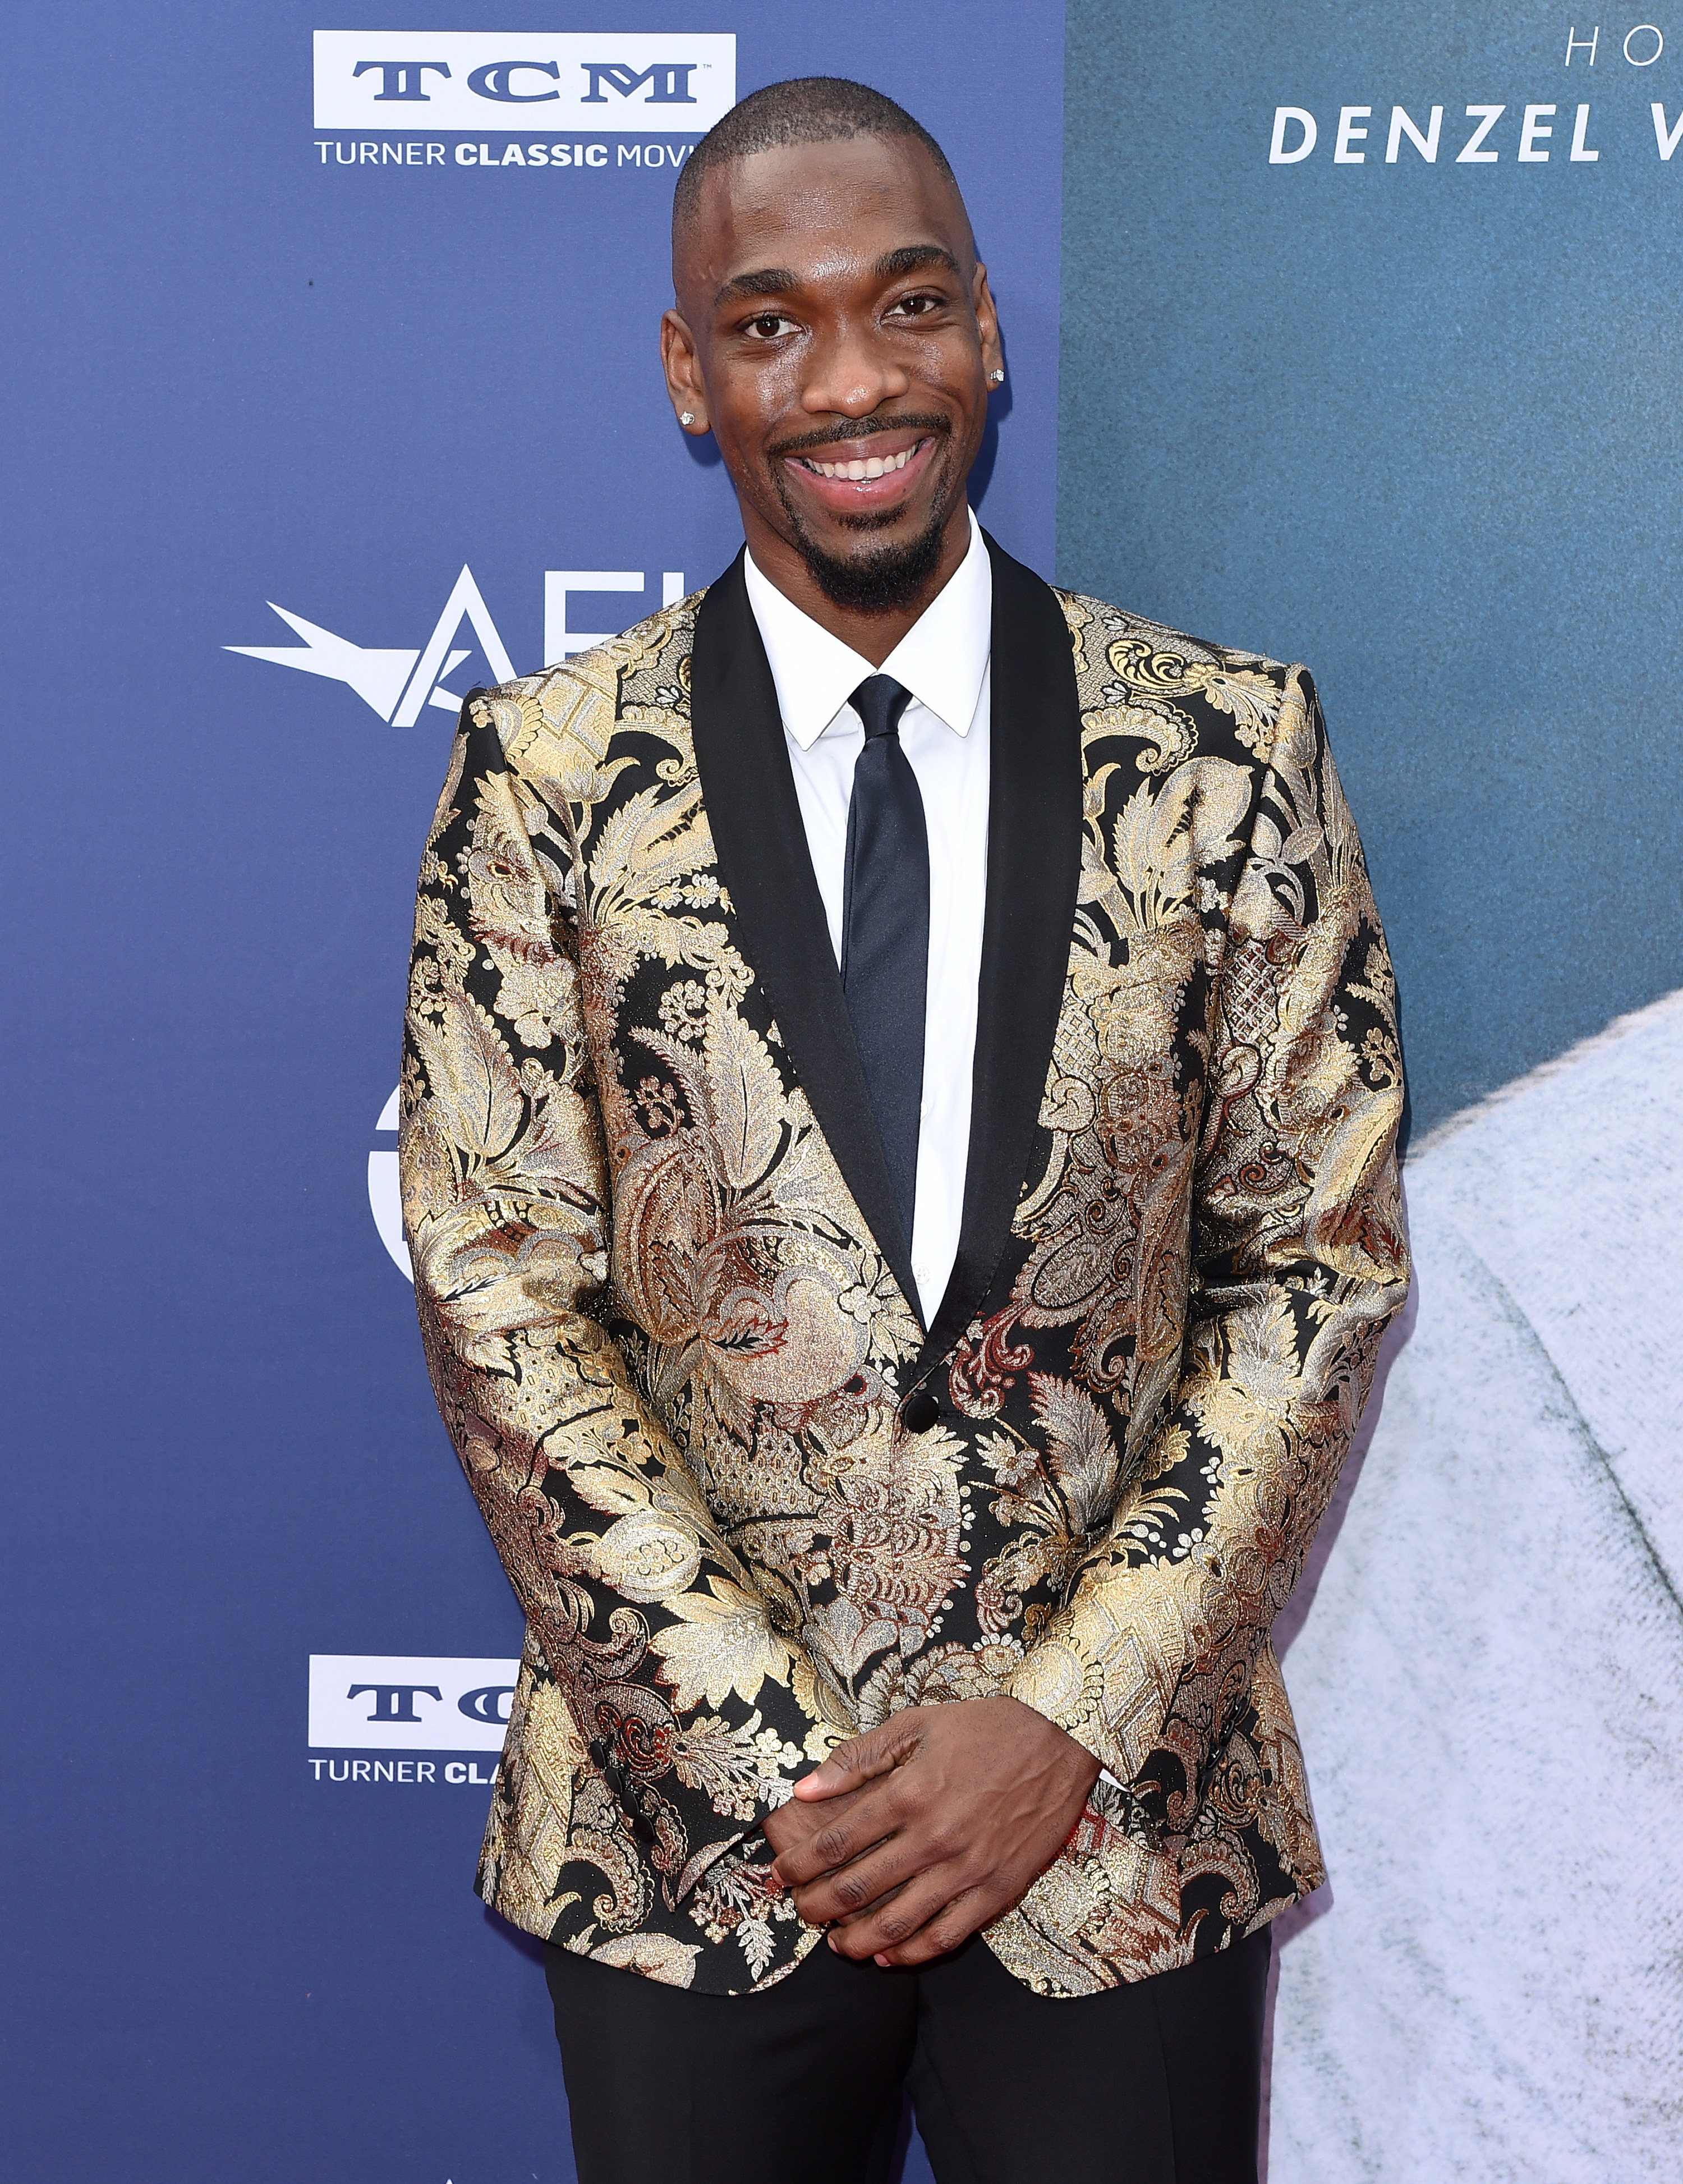 Jay Pharoah attends the American Film Institute's 47th Life Achievement Award Gala Tribute to Denzel Washington at Dolby Theatre on June 06, 2019 in Hollywood, California